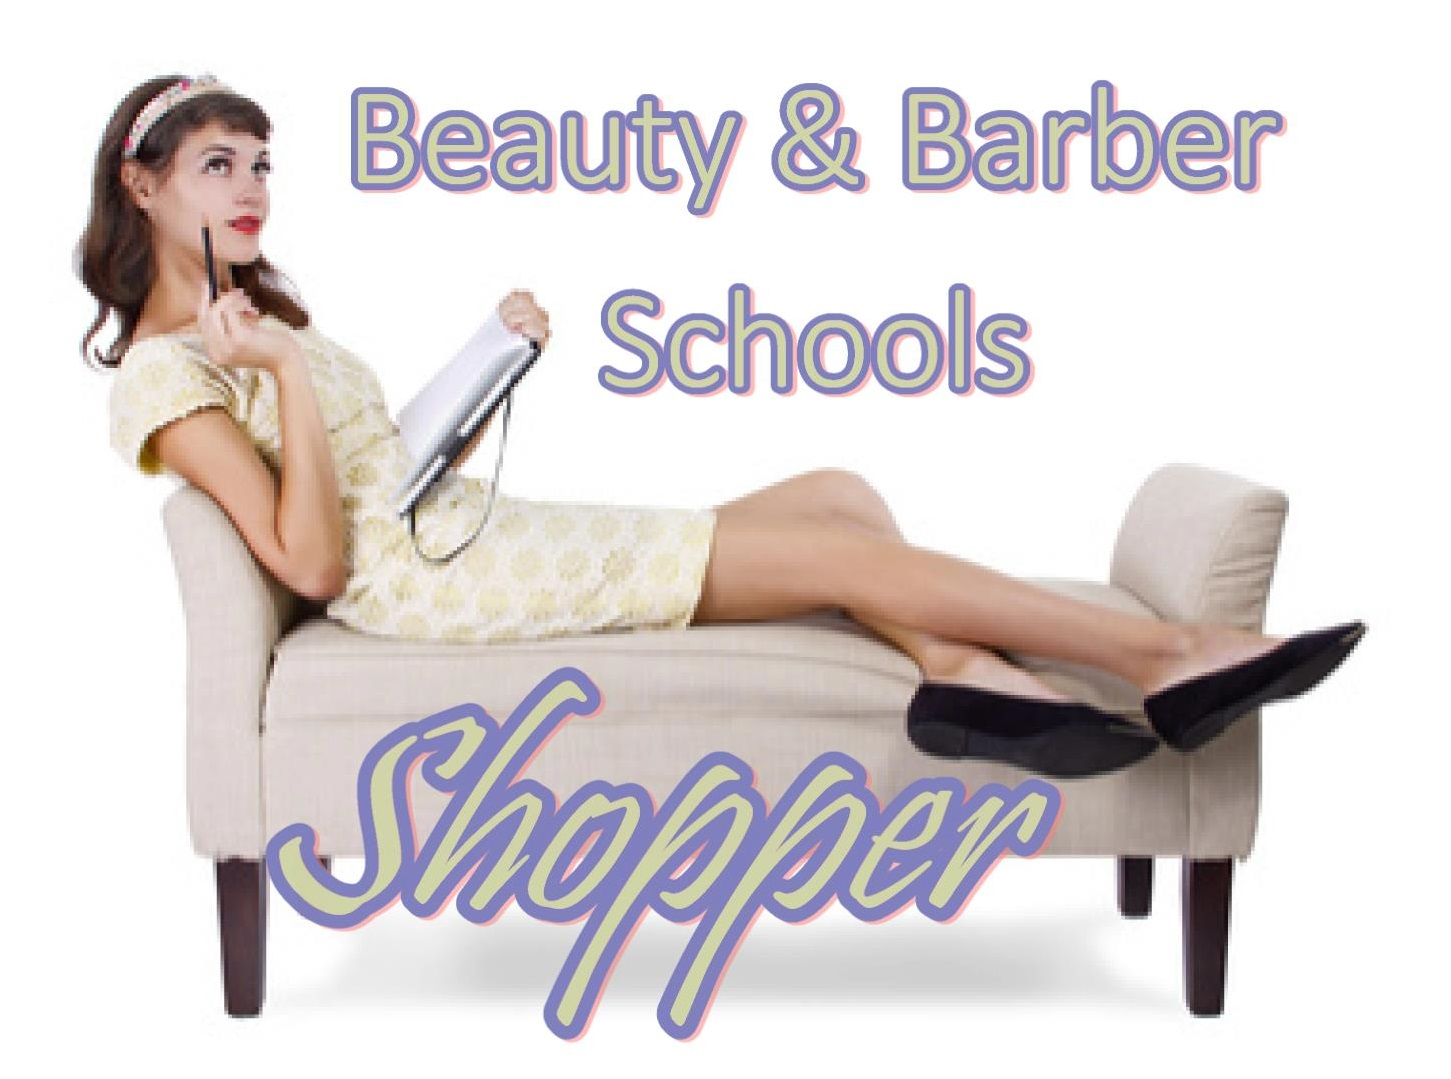 find barber and beauty schools in NEBRASKA